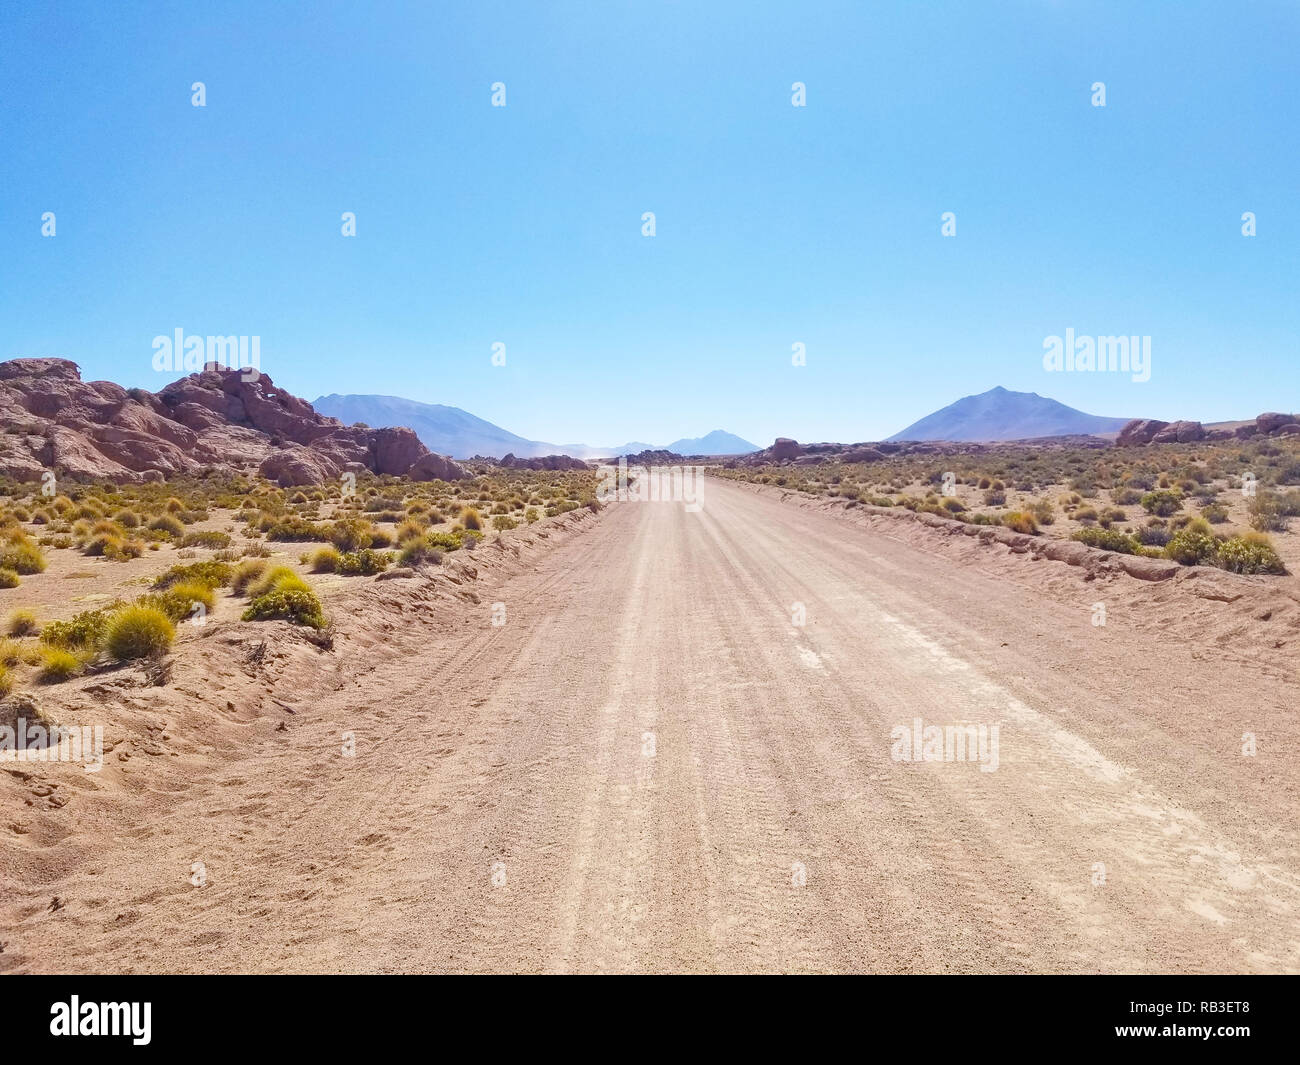 Desert road with mountains in the distance. Rocky mountains and little vegetation. Stock Photo